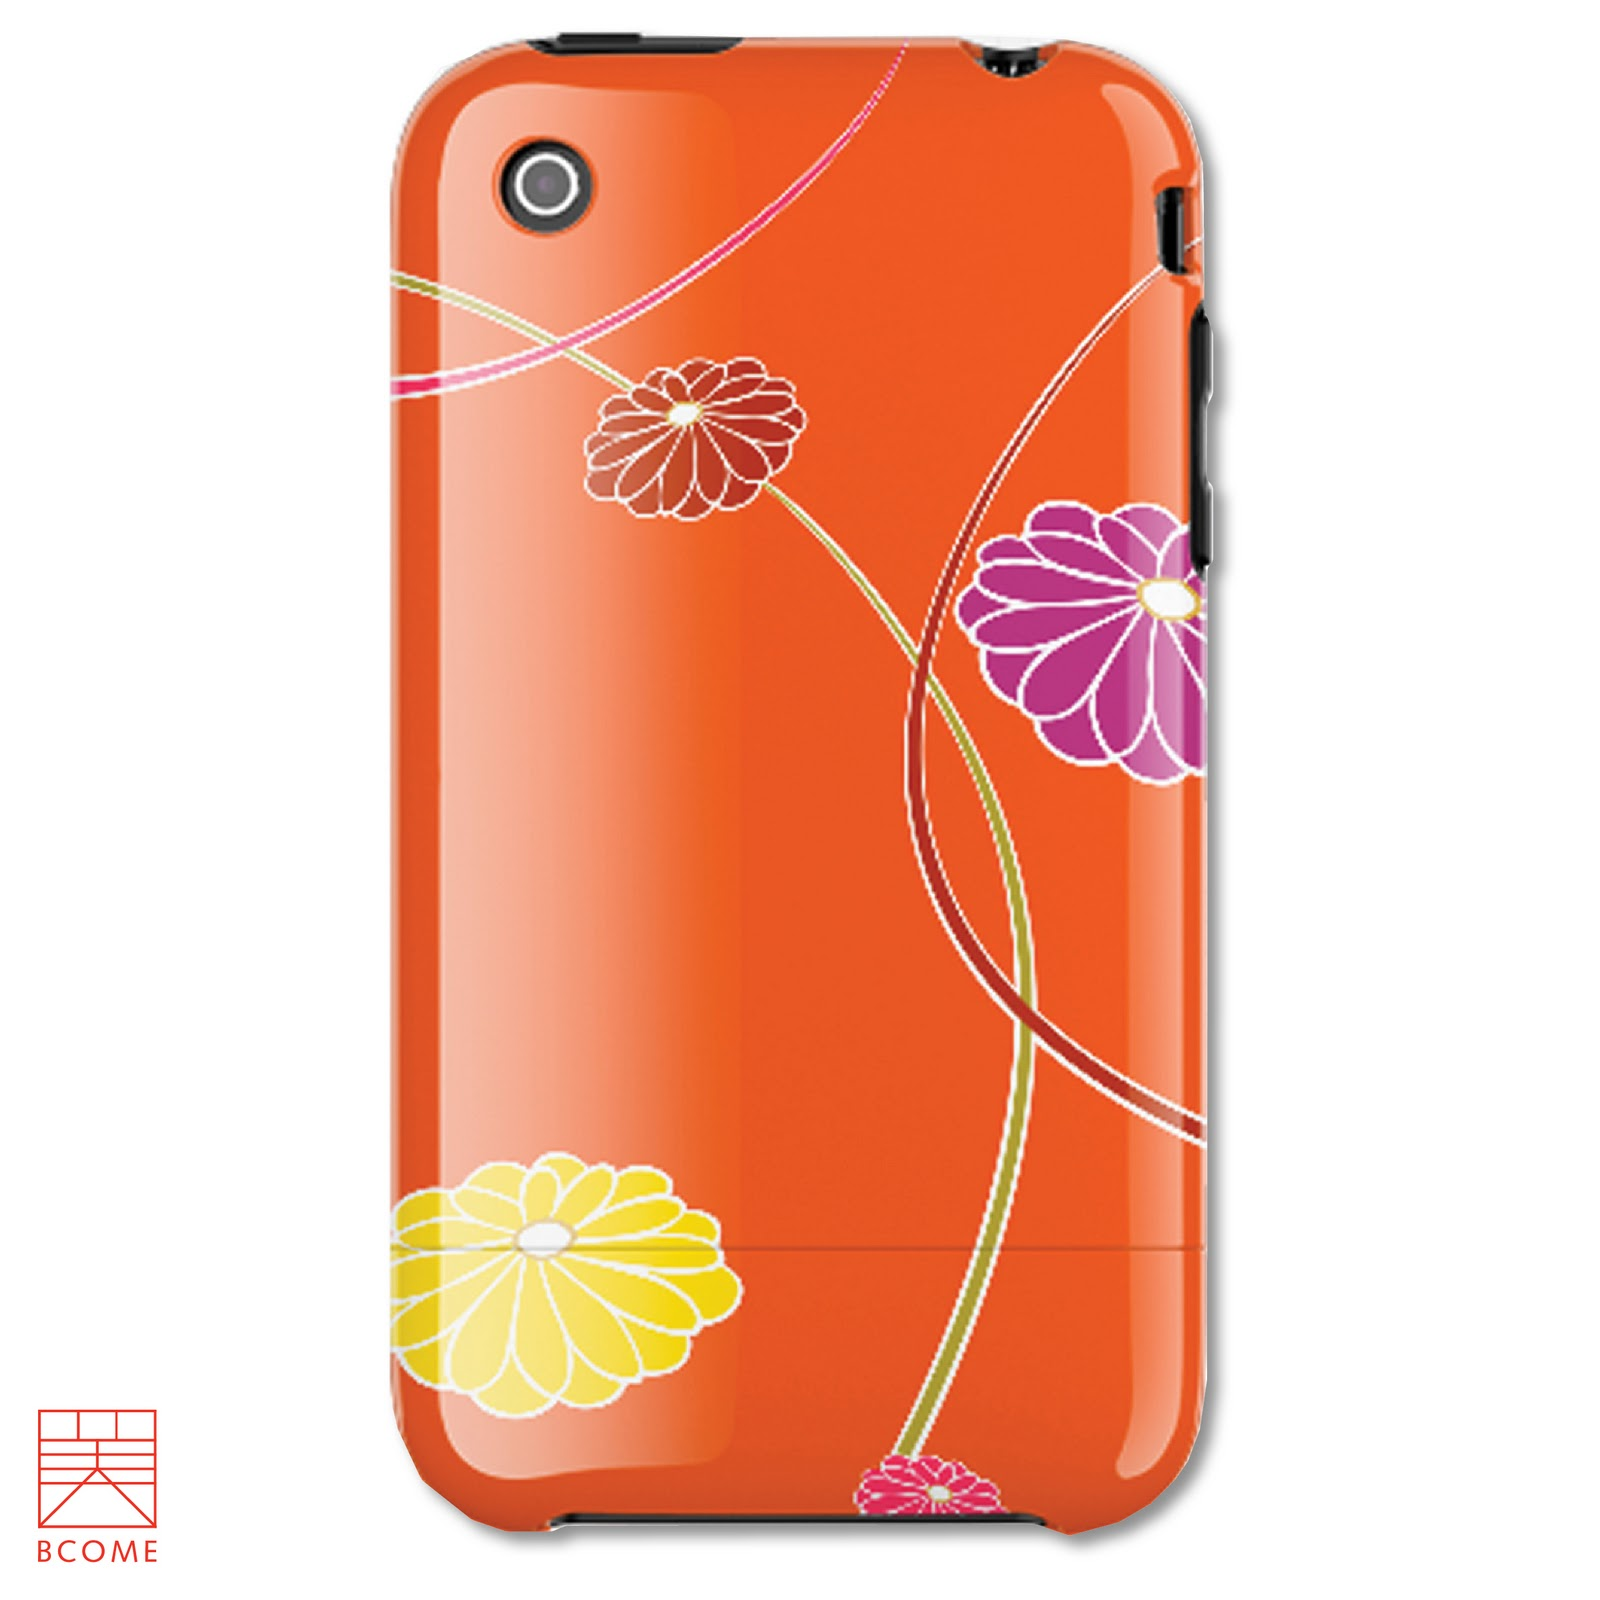 Iphone Gs Cover